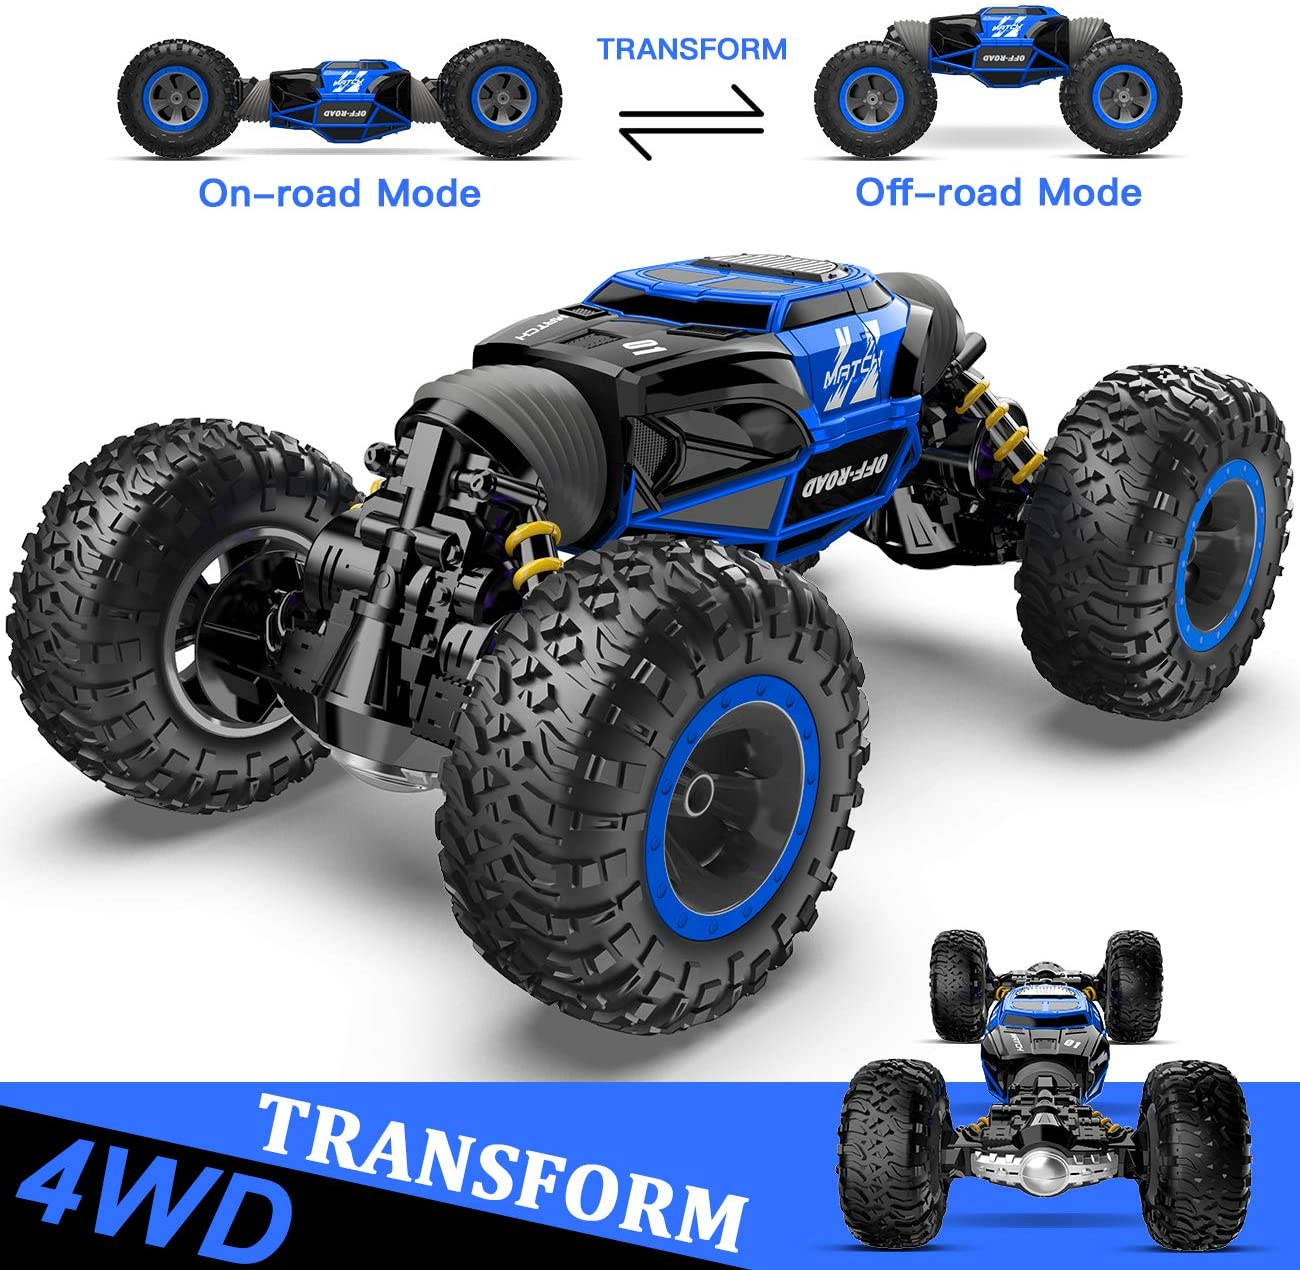 BEZGAR 16 Toy Grade1:14 Scale Remote Control Crawler, 4WD Transform 15 Km/h All Terrains Electric Toy Stunt Cars RC Monster Vehicle Truck Car with Rechargeable Batteries for Boys Kids Teens and Adults: Toys & Games